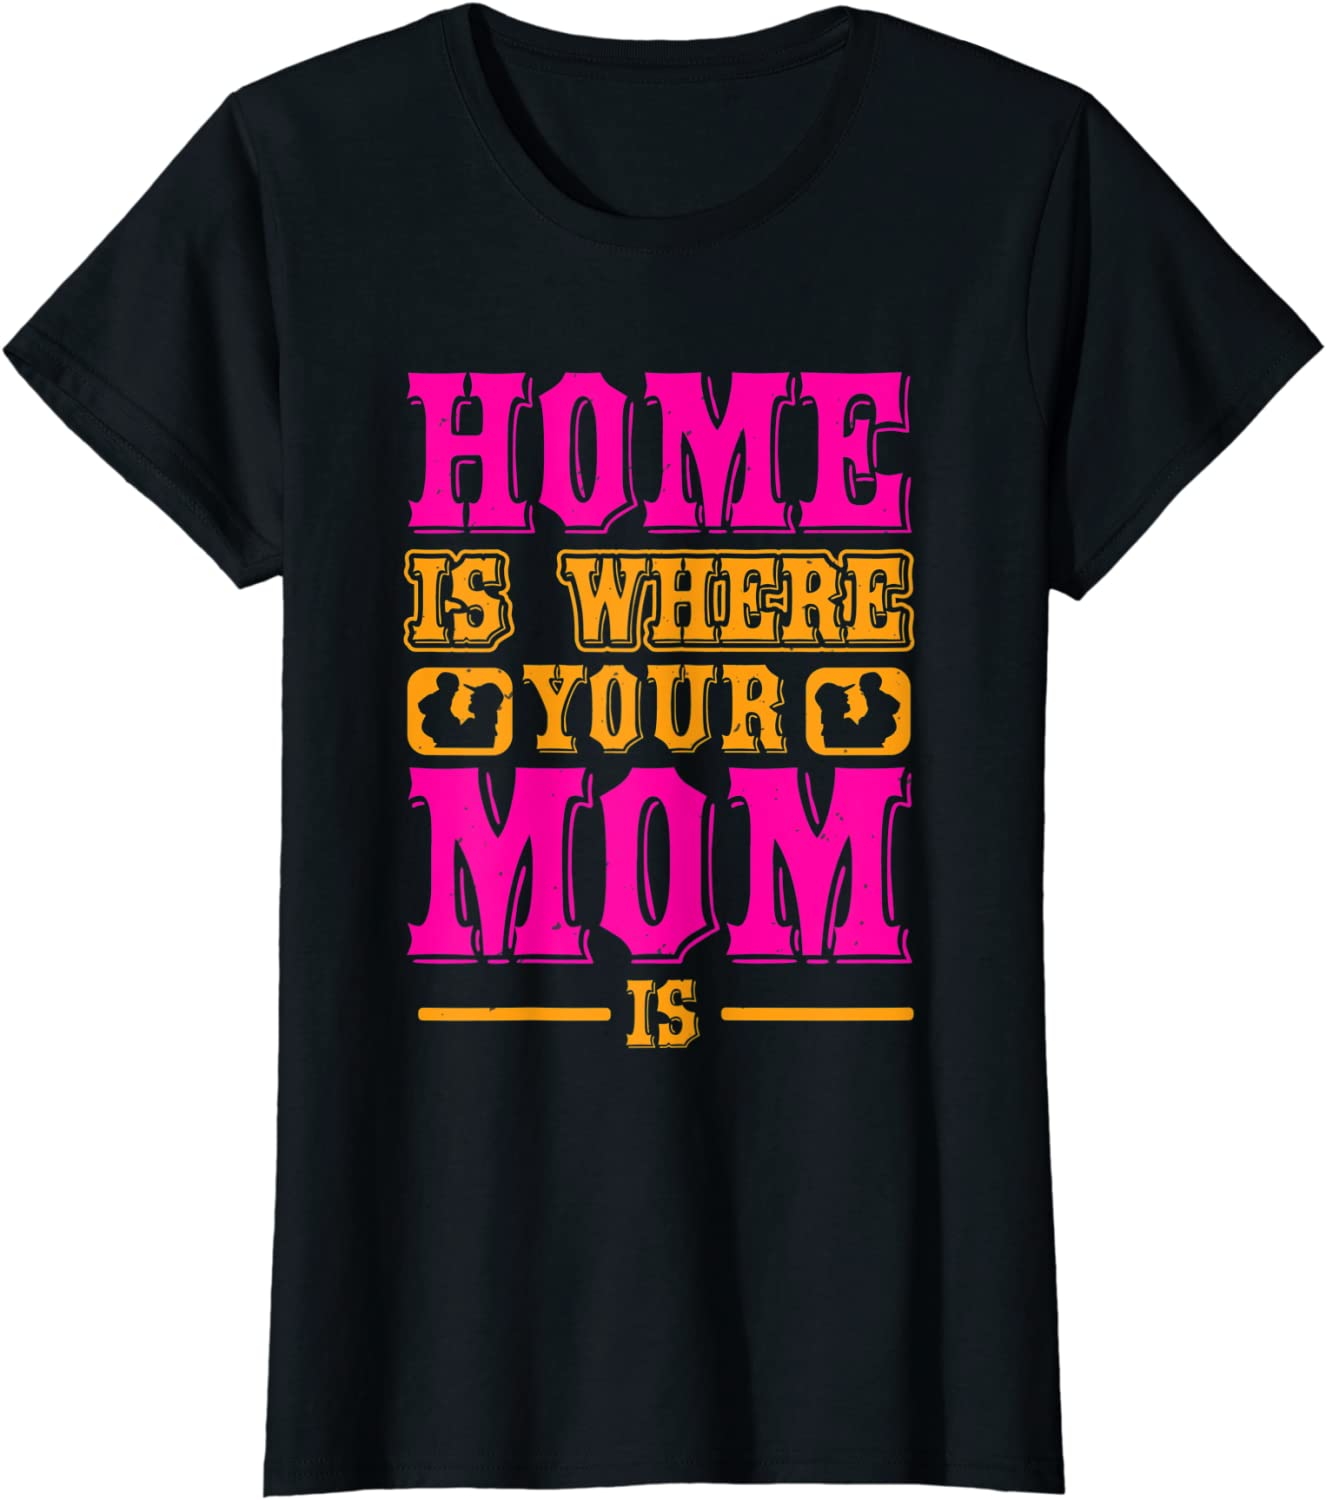 Womens Home is where your mom is T-Shirt